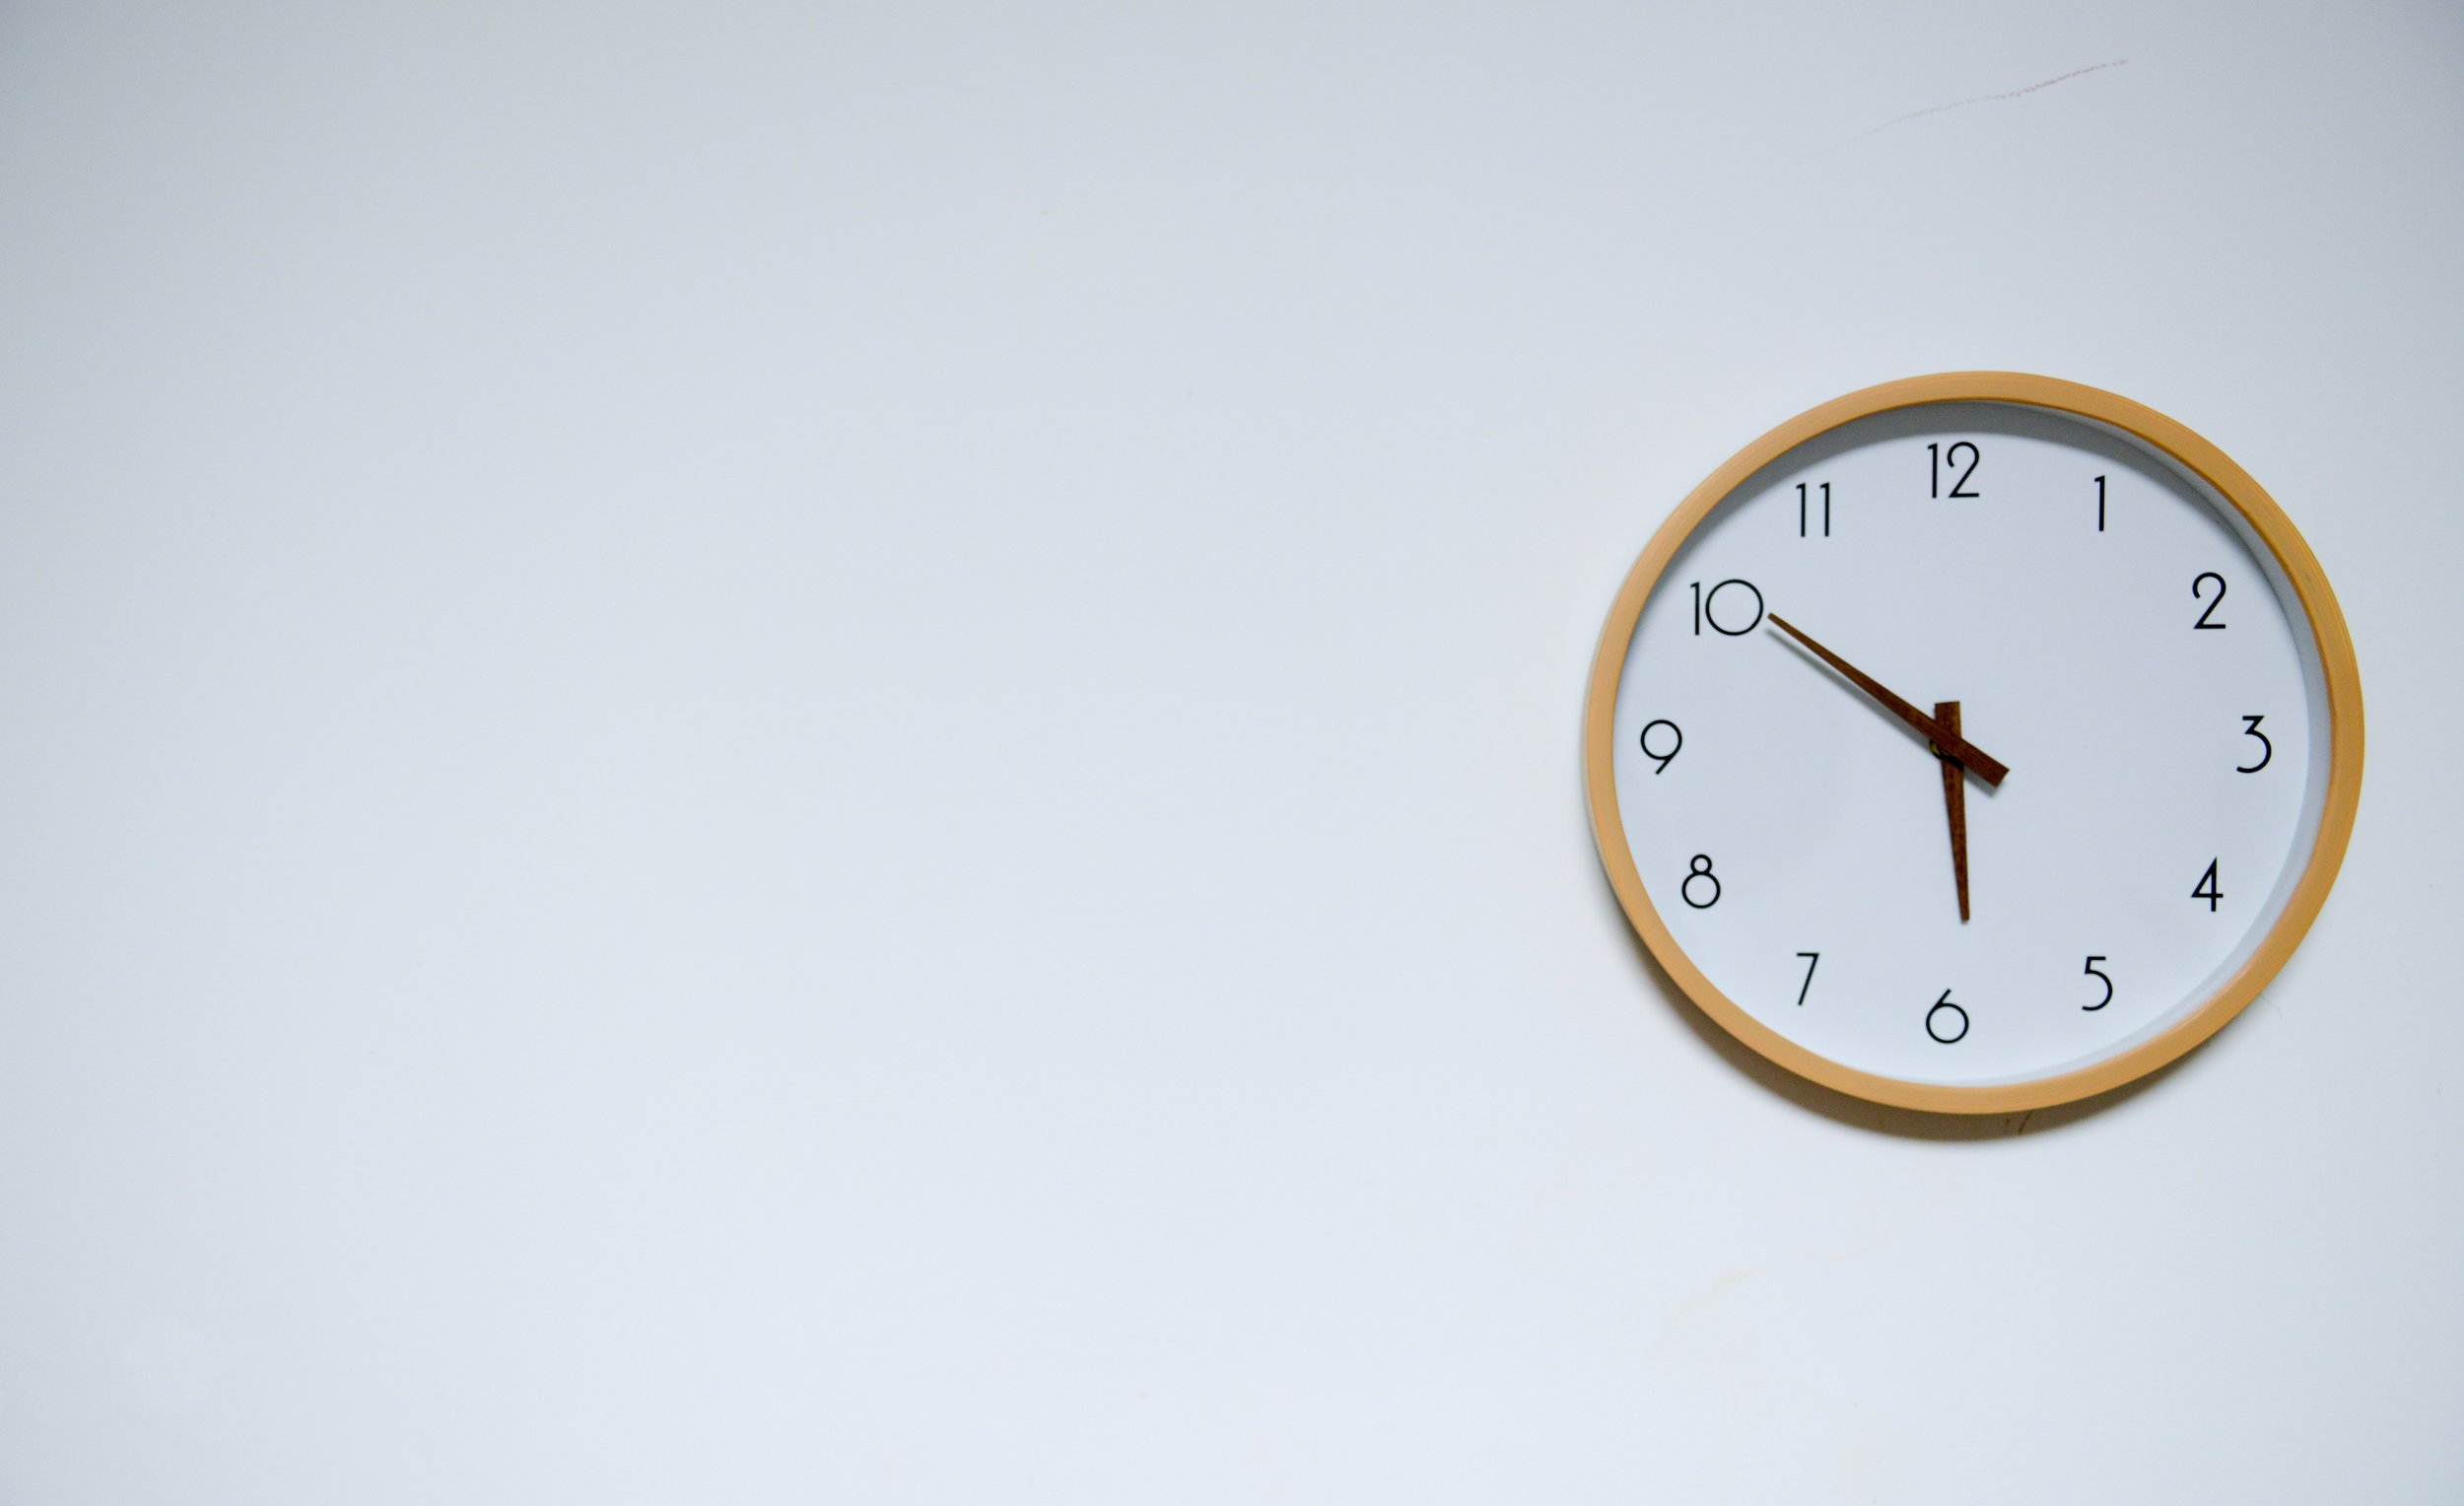 fight procrastination with this insanely effective time management hack